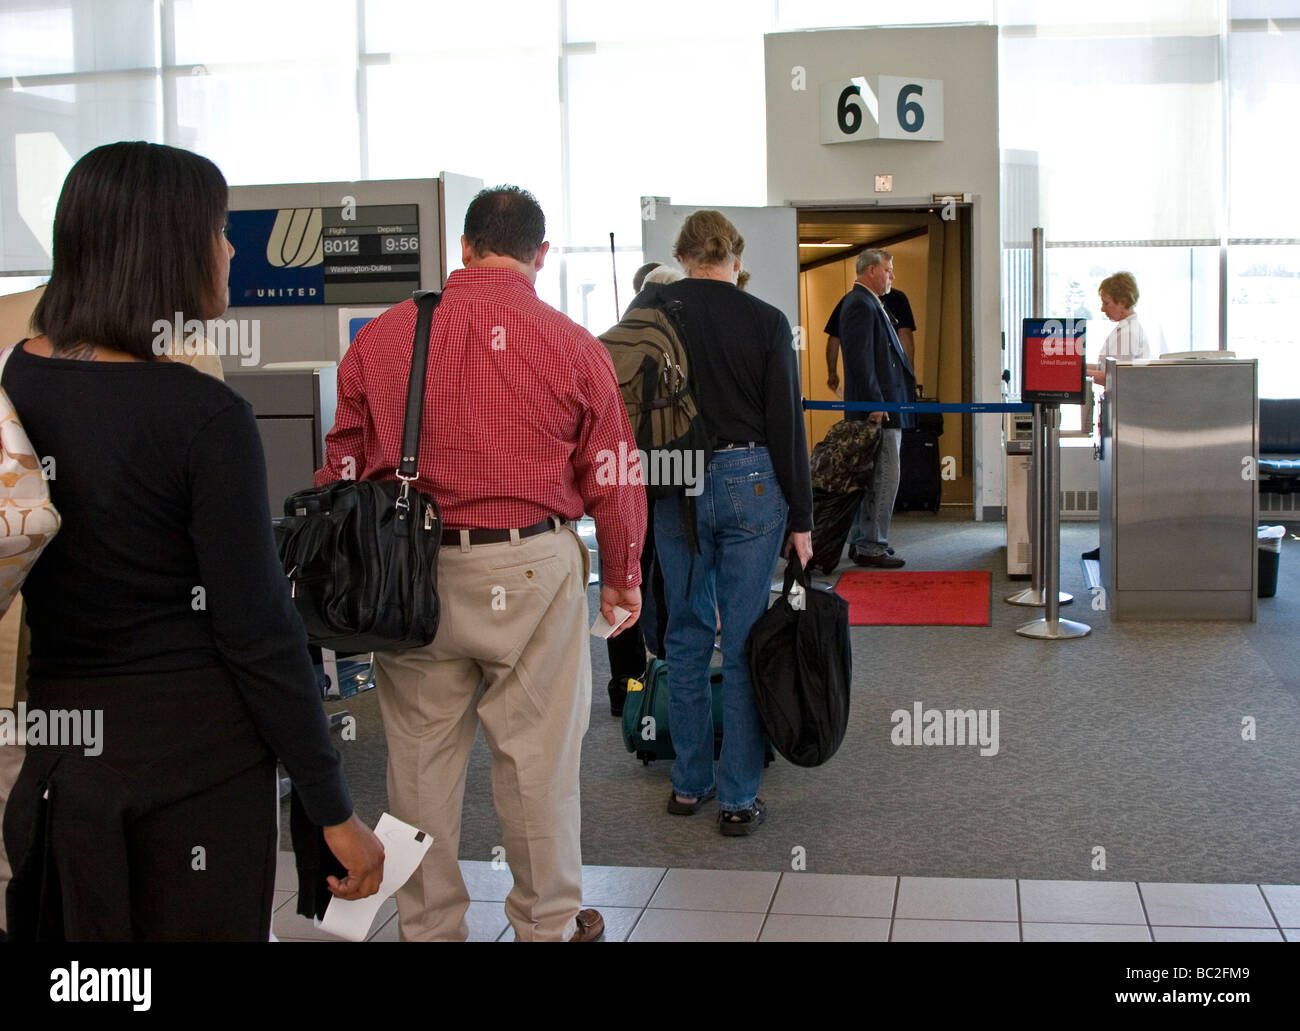 Passengers line up at airport gate to board plane - Stock Image